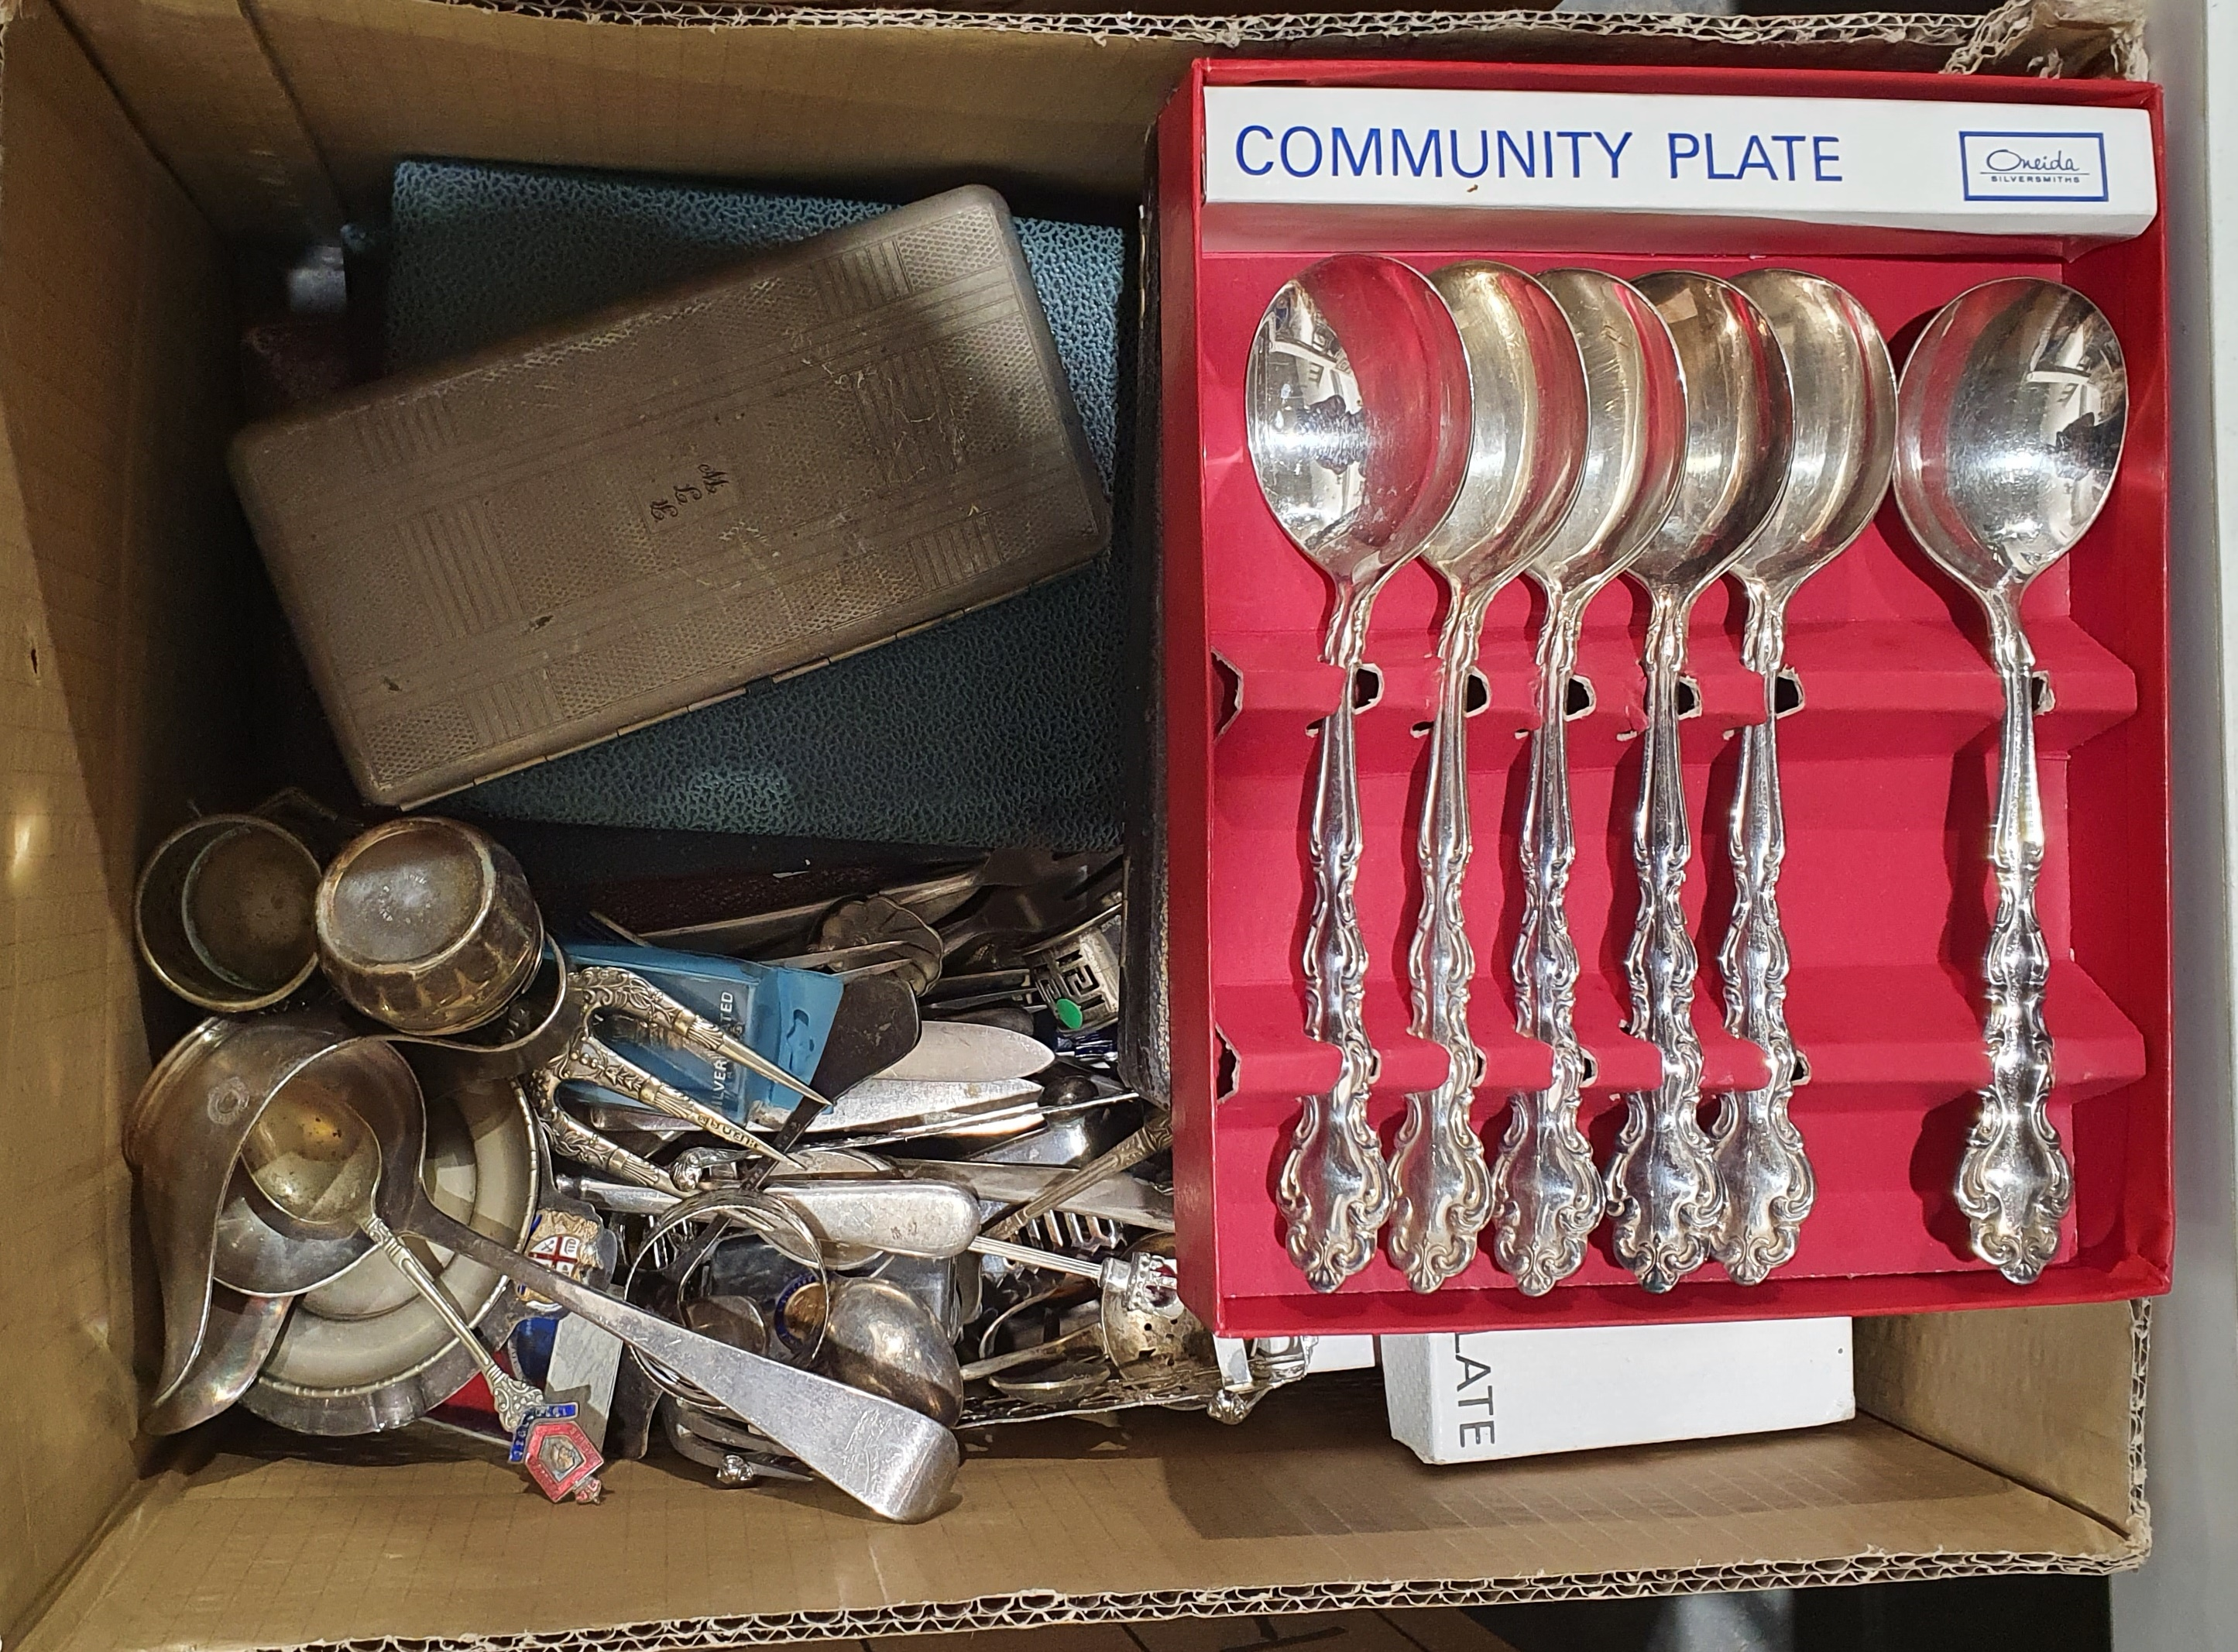 Large quantity of assorted plated ware, teapots, sifters, flatware, etc (2 boxes) - Image 3 of 3